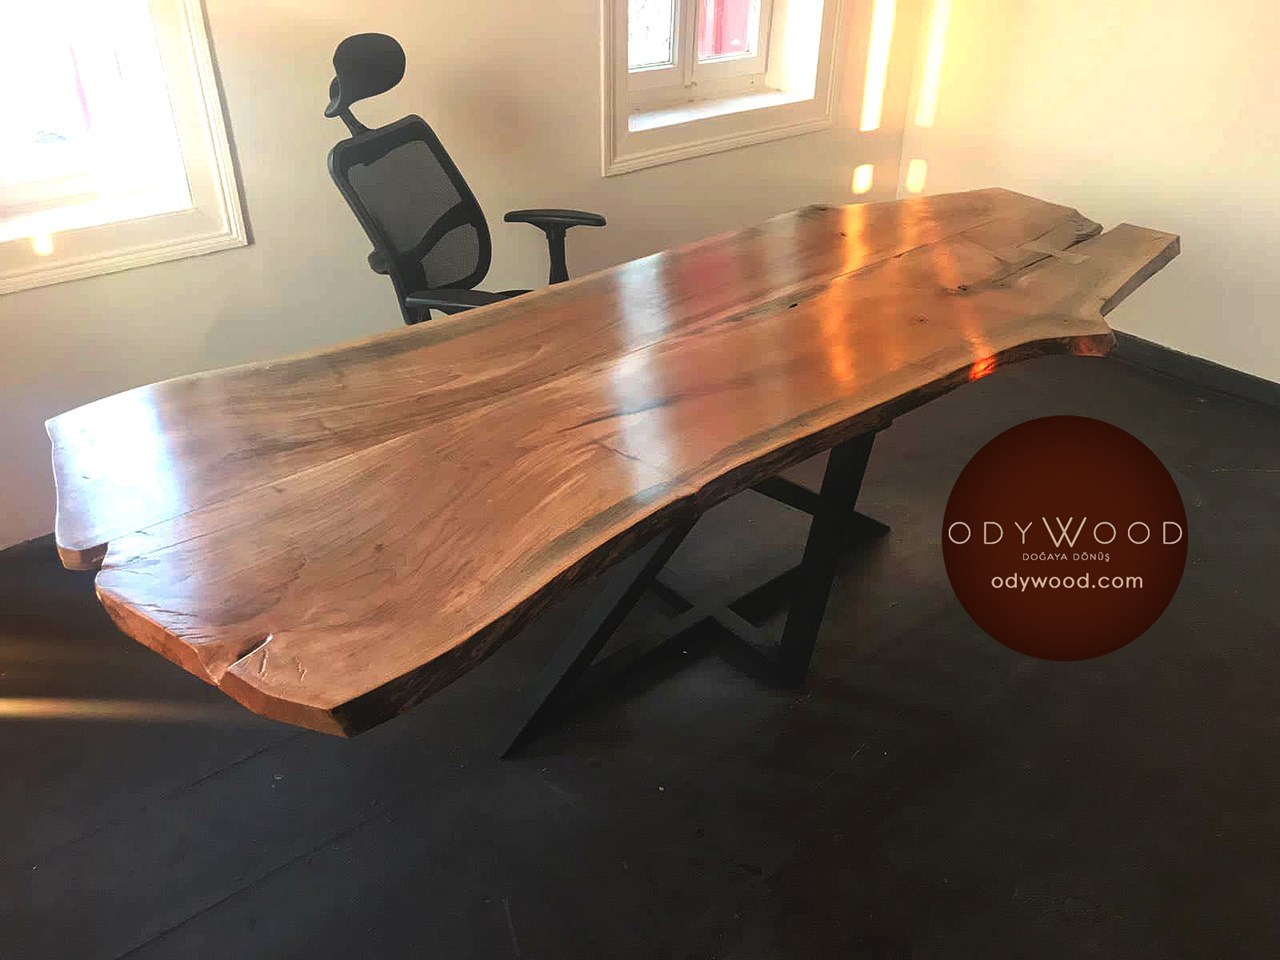 Live Edge Walnut Table - Pentagram Leg'in resmi